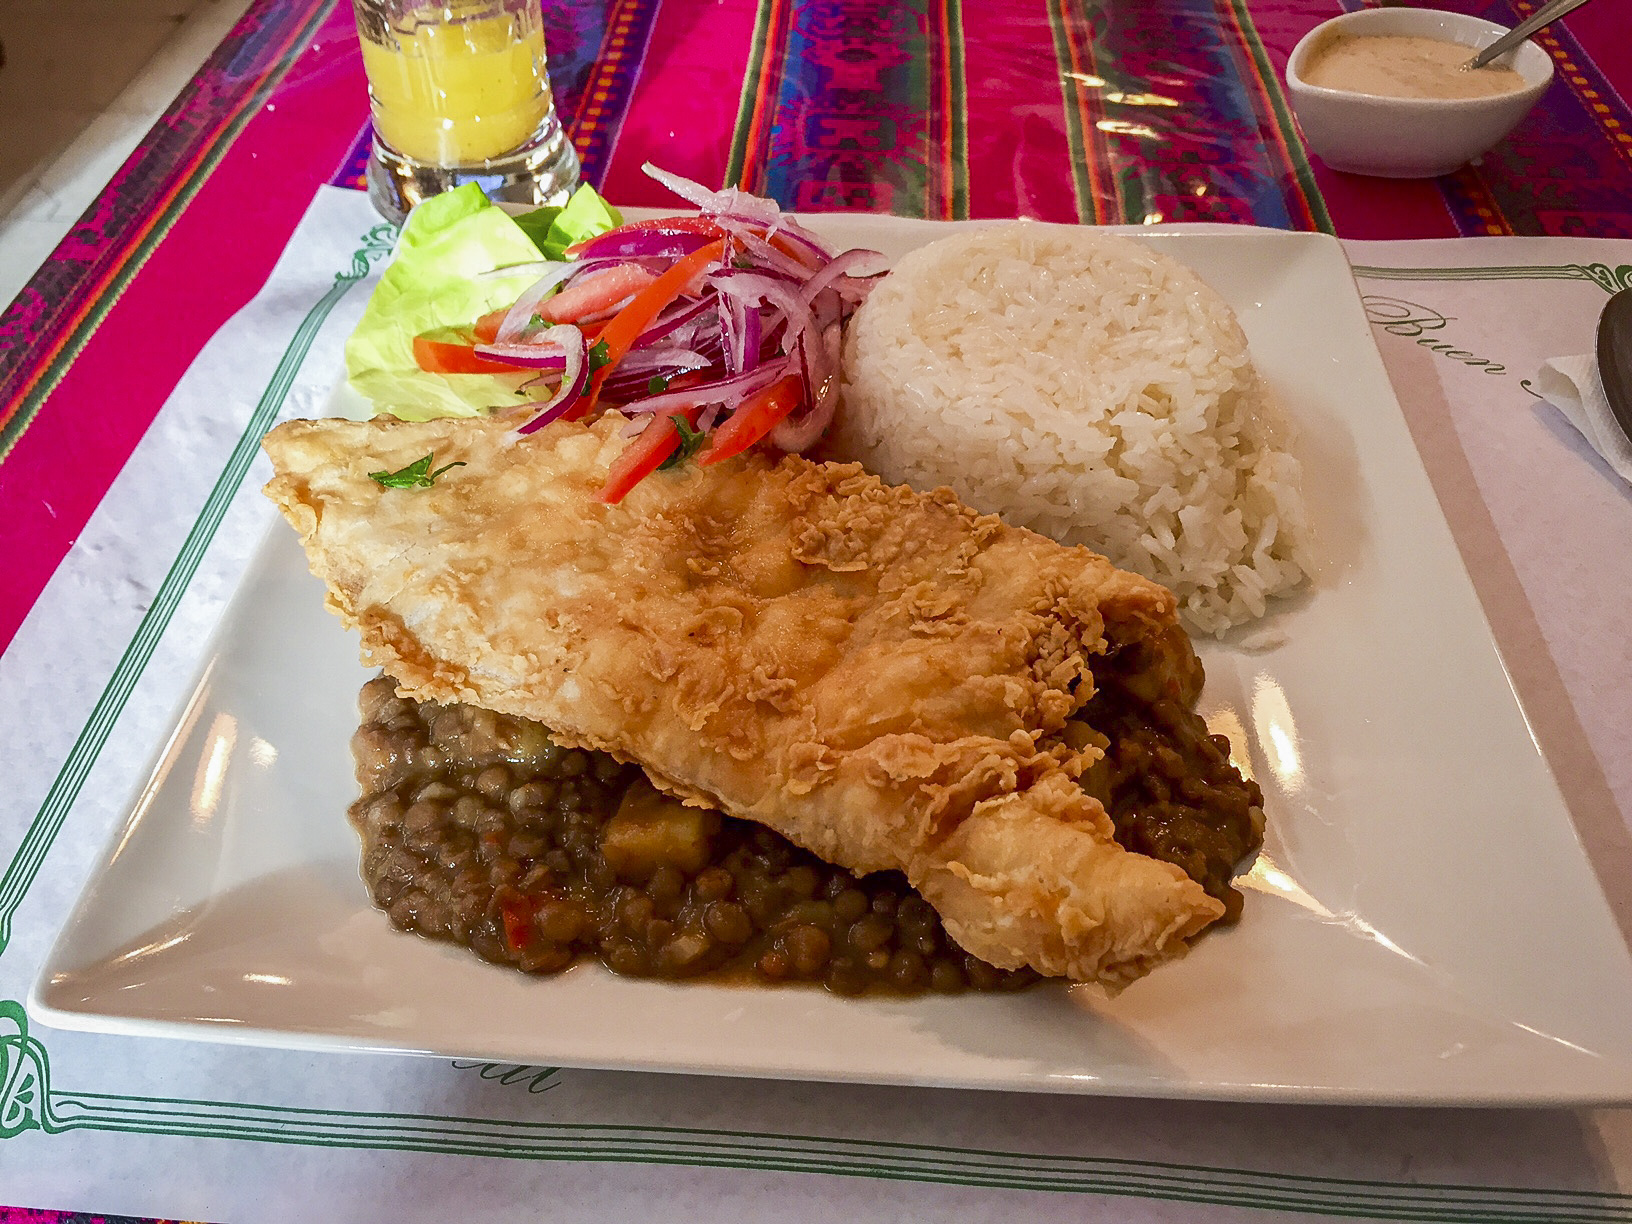 Course 2: Fried fish with lentils and rice